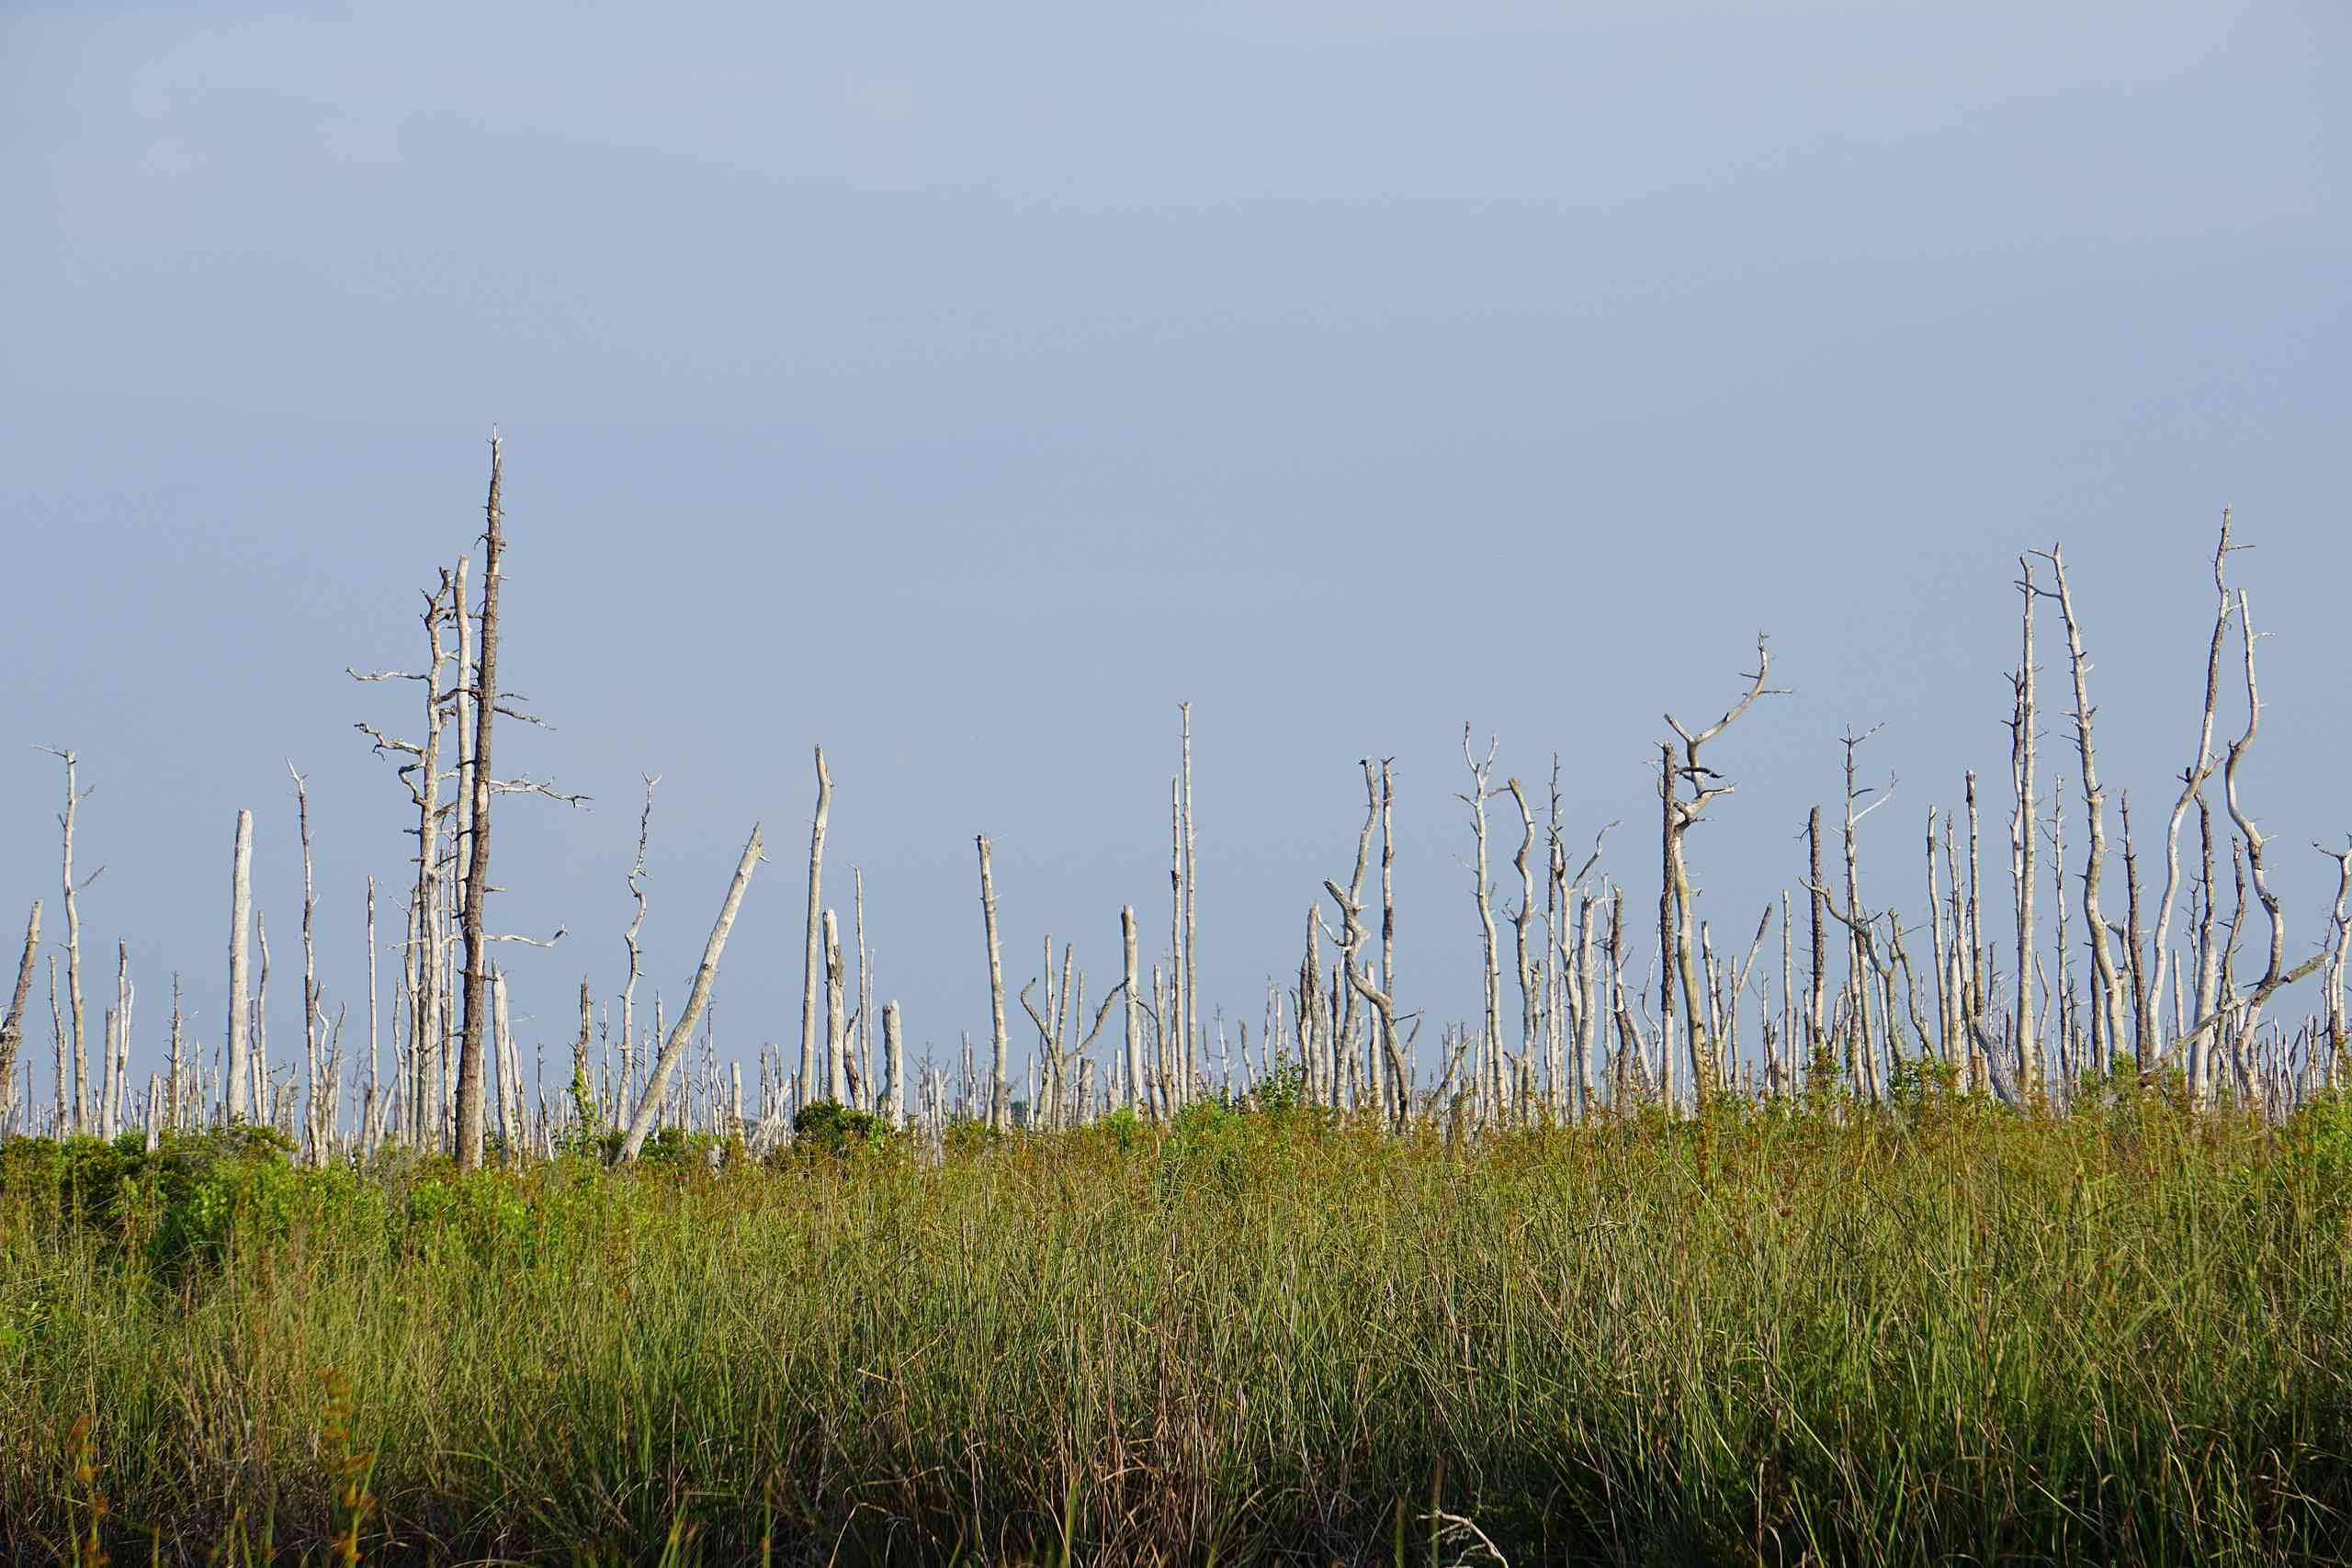 Dying trees caused by saltwater intrusion on surrounding wetlands